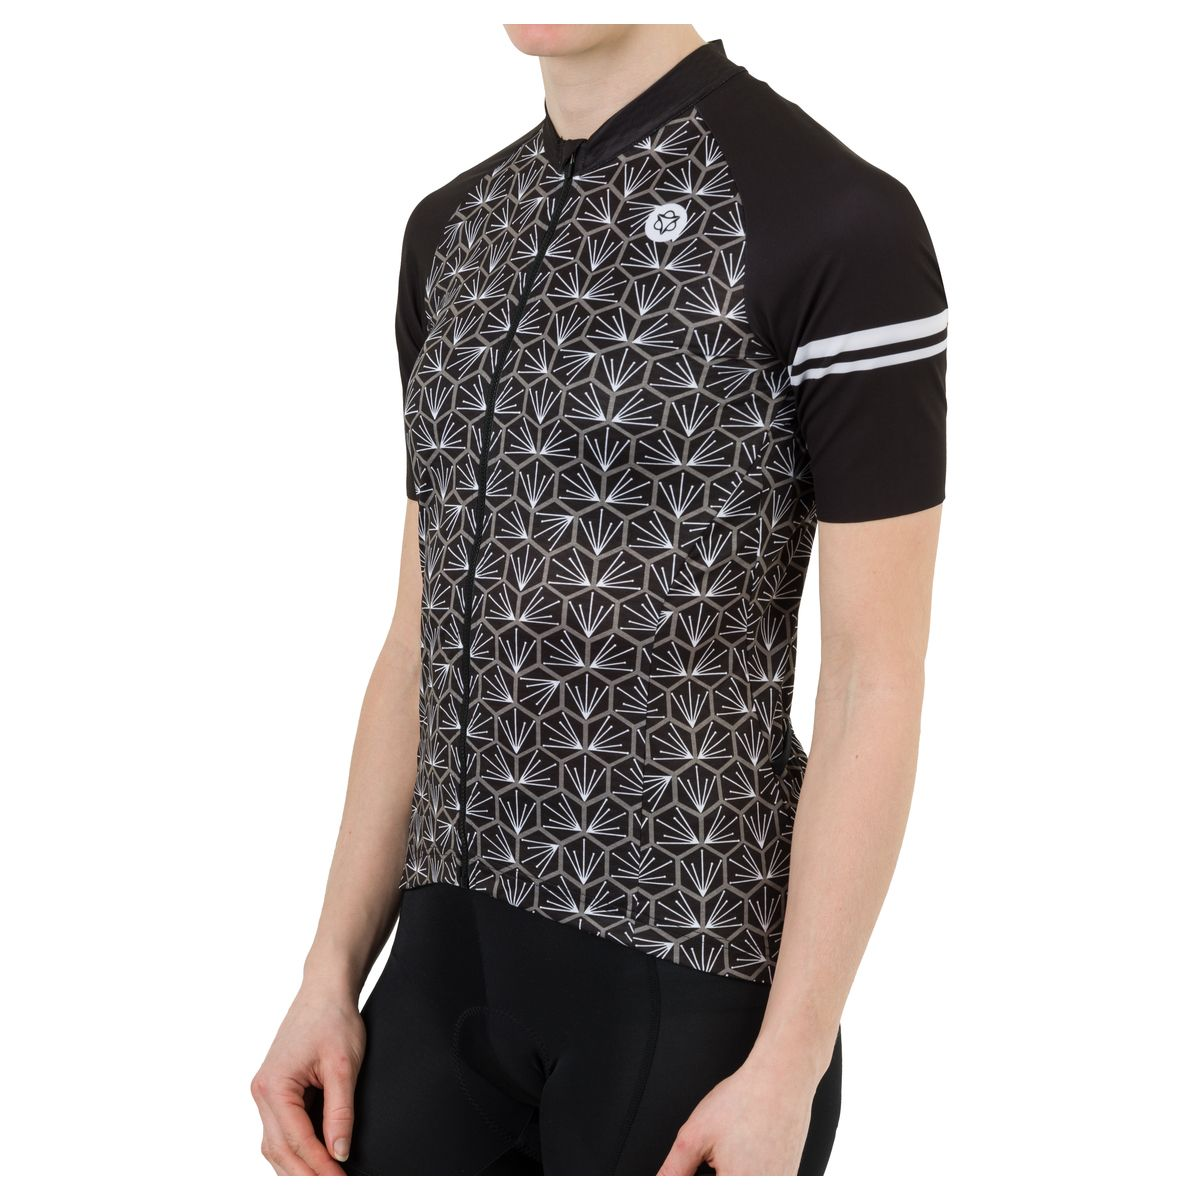 Tile Fietsshirt Trend Dames fit example